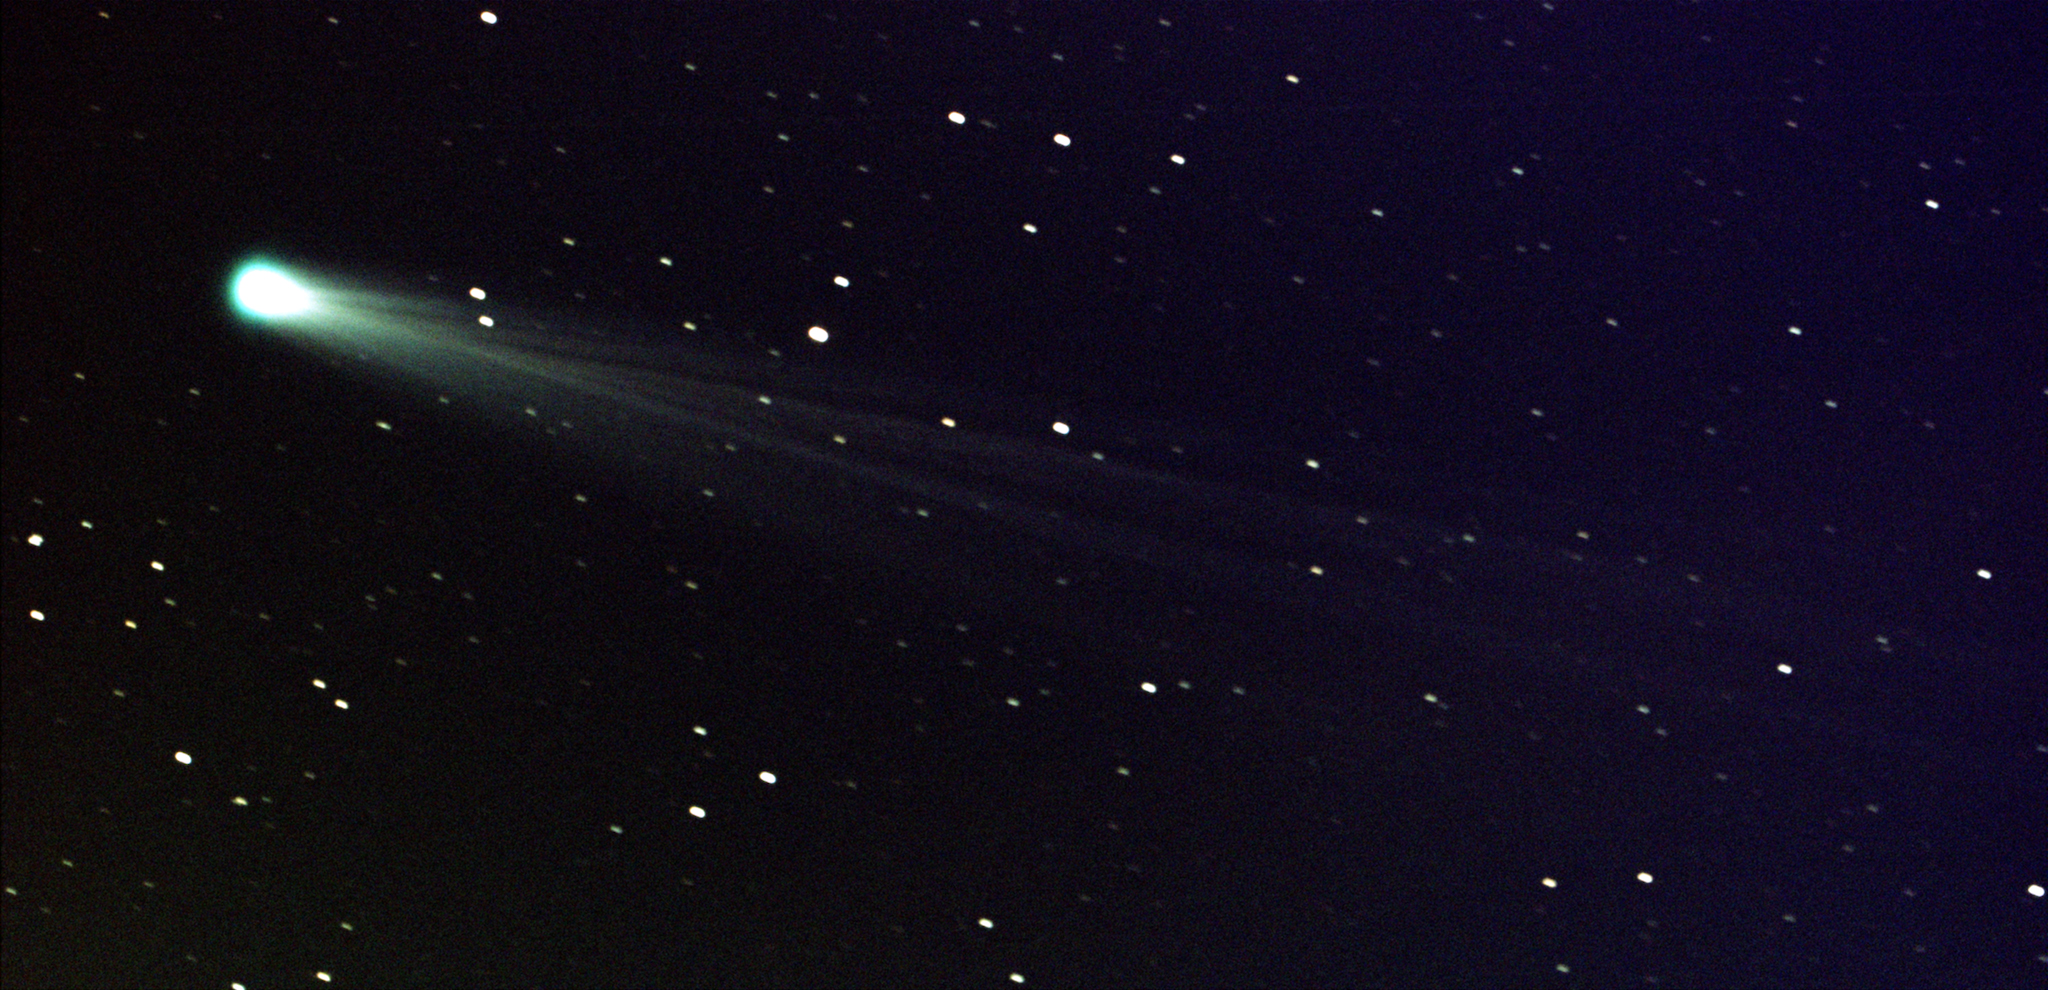 In this photo provided by NASA, Comet ISON shows off its tail in this three-minute exposure taken on Nov. 19, 2013 at 6:10 a.m. EST, using a 14-inch telescope located at the Marshall Space Flight Center. The comet is just nine days away from its close encounter with the sun; hopefully it will survive to put on a nice show during the first week of December. At the time of this image, Comet ISON was some 44 million miles from the sun -- and 80 million miles from Earth -- moving at a speed of 136,700 miles per hour. (AP Photo/NASA, Aaron Kingery)